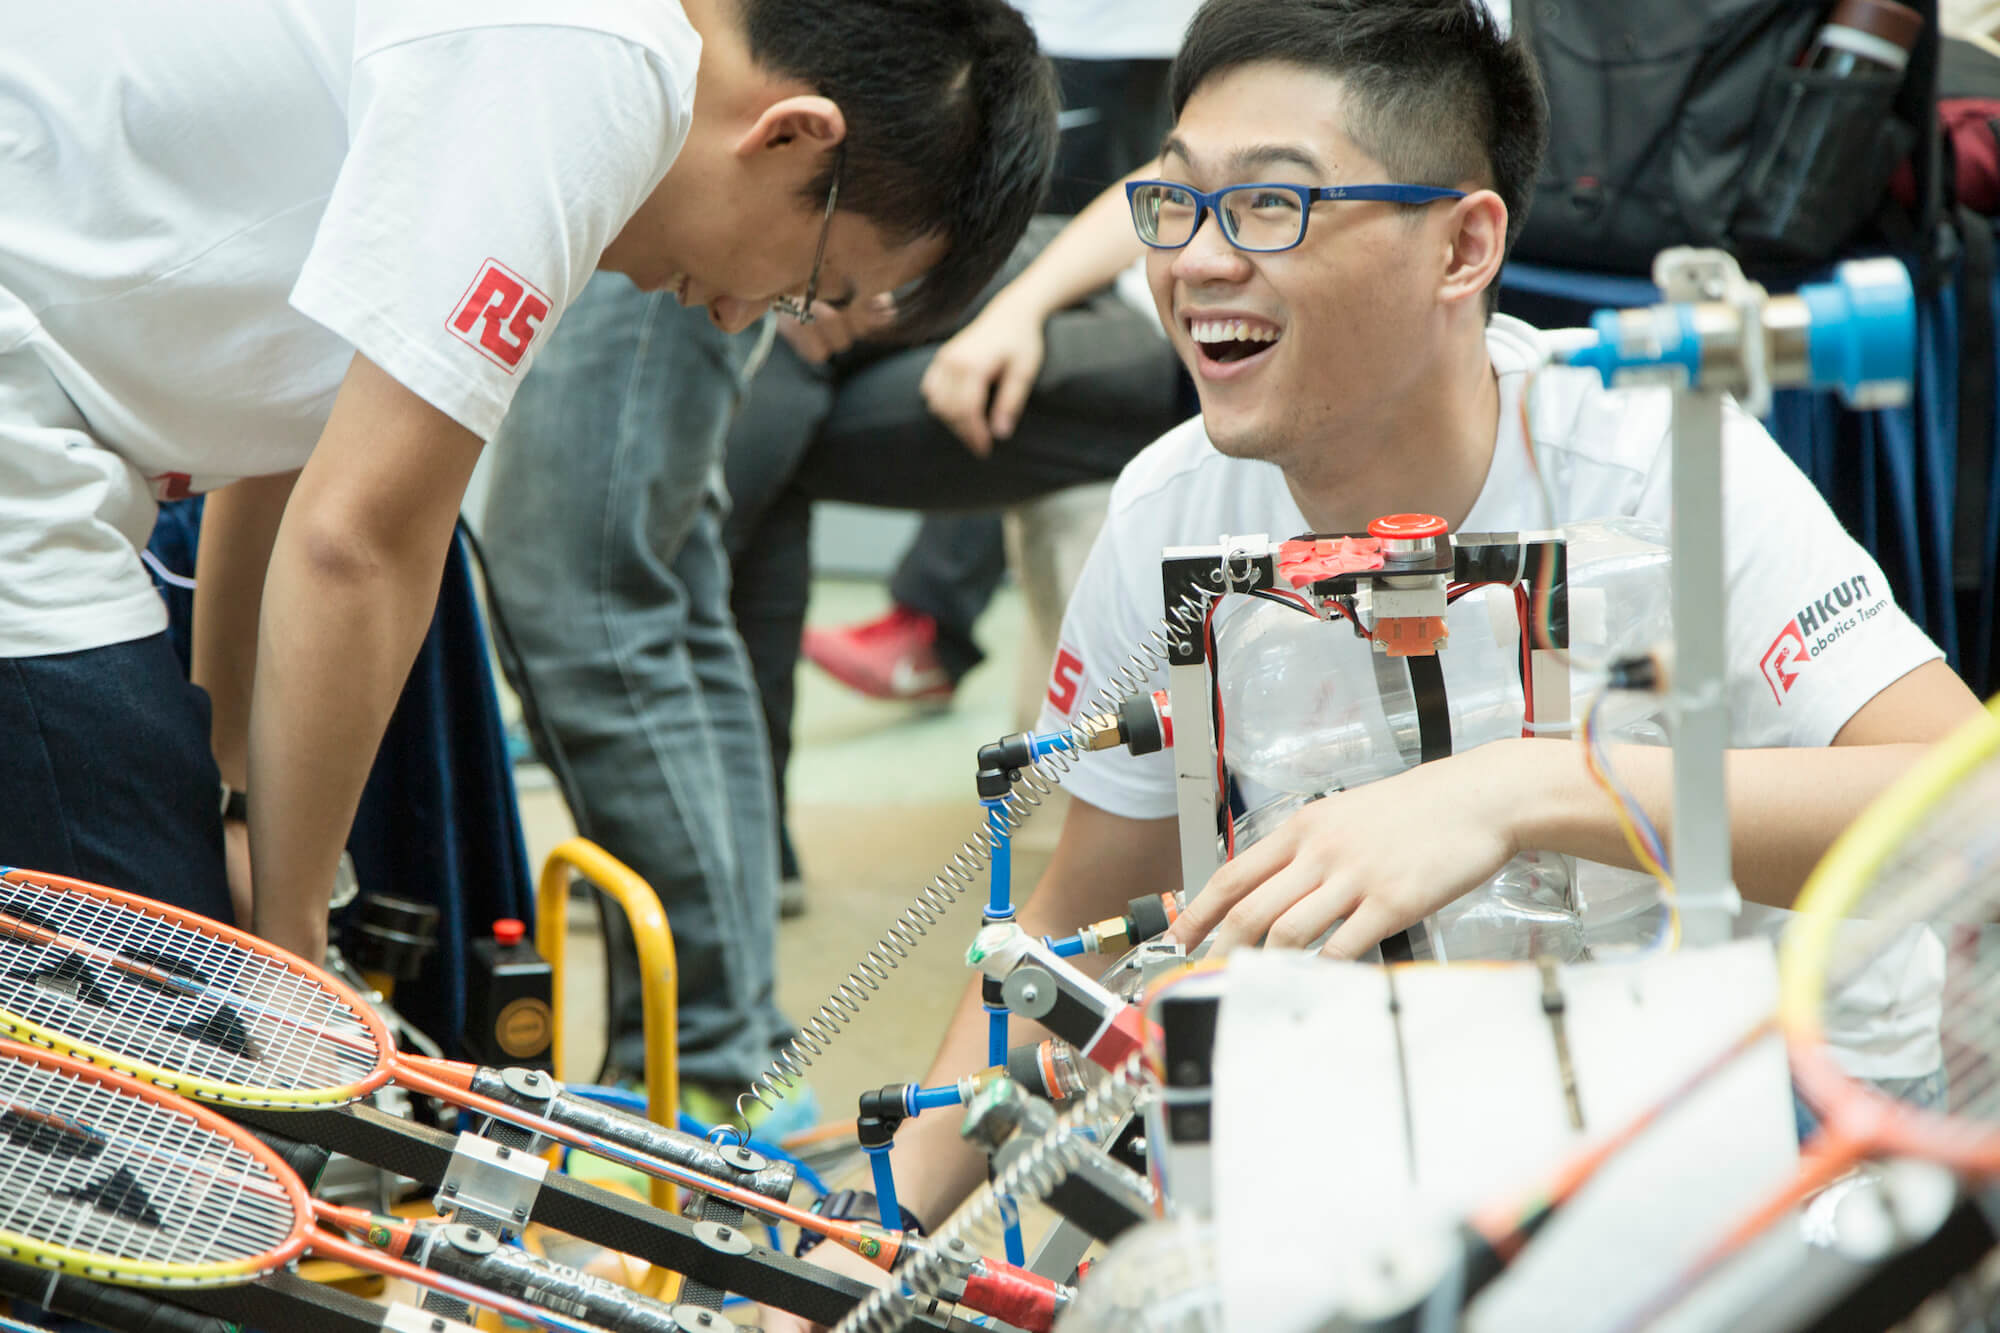 Annual 'Robocon' sponsored by RS at HKUST, Hong Kong. June 2015